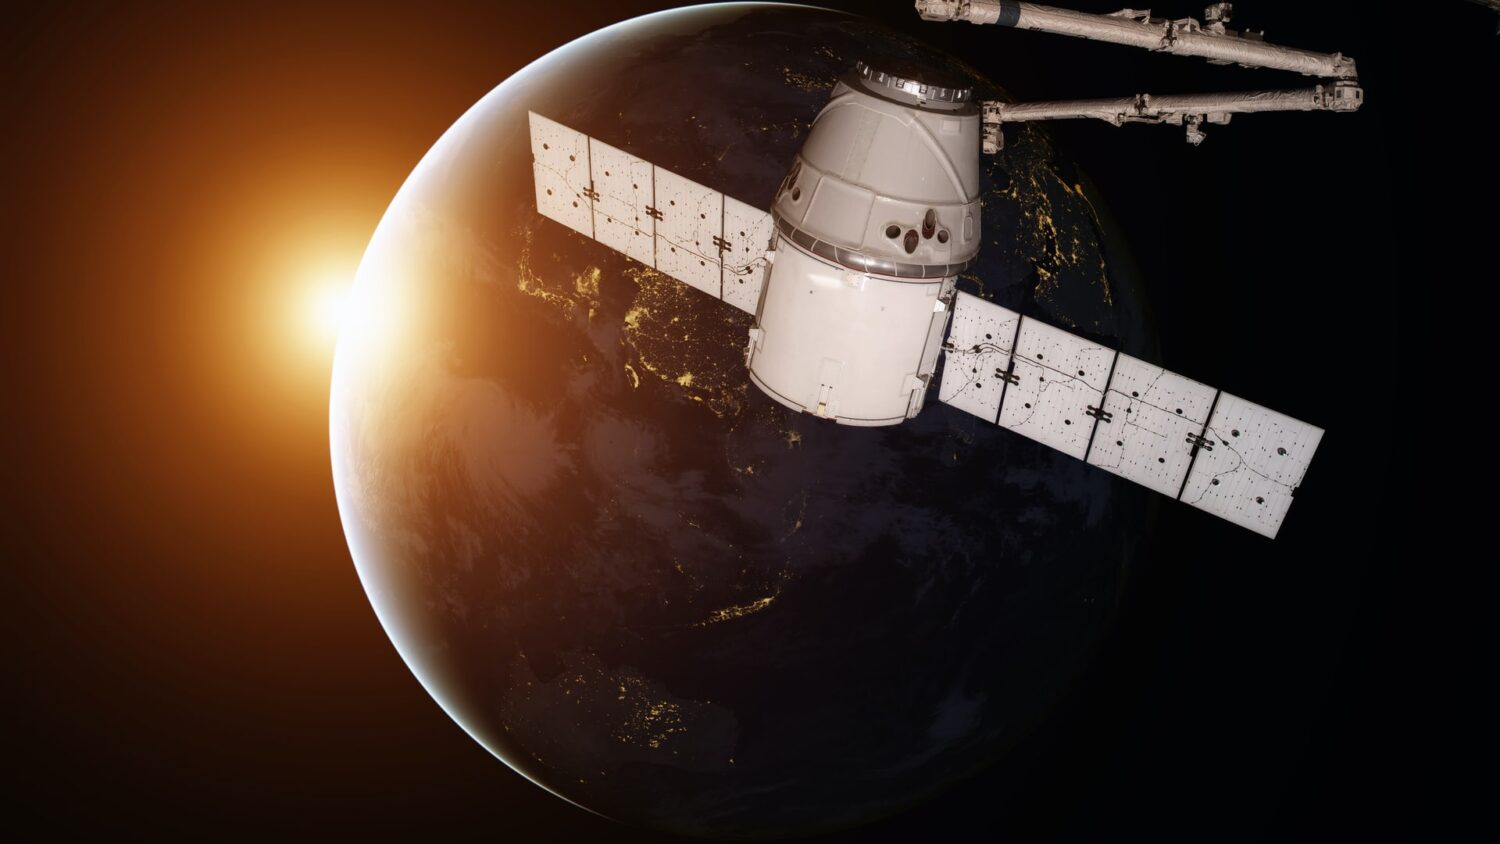 Space infrastructure draws record investor interest in third quarter